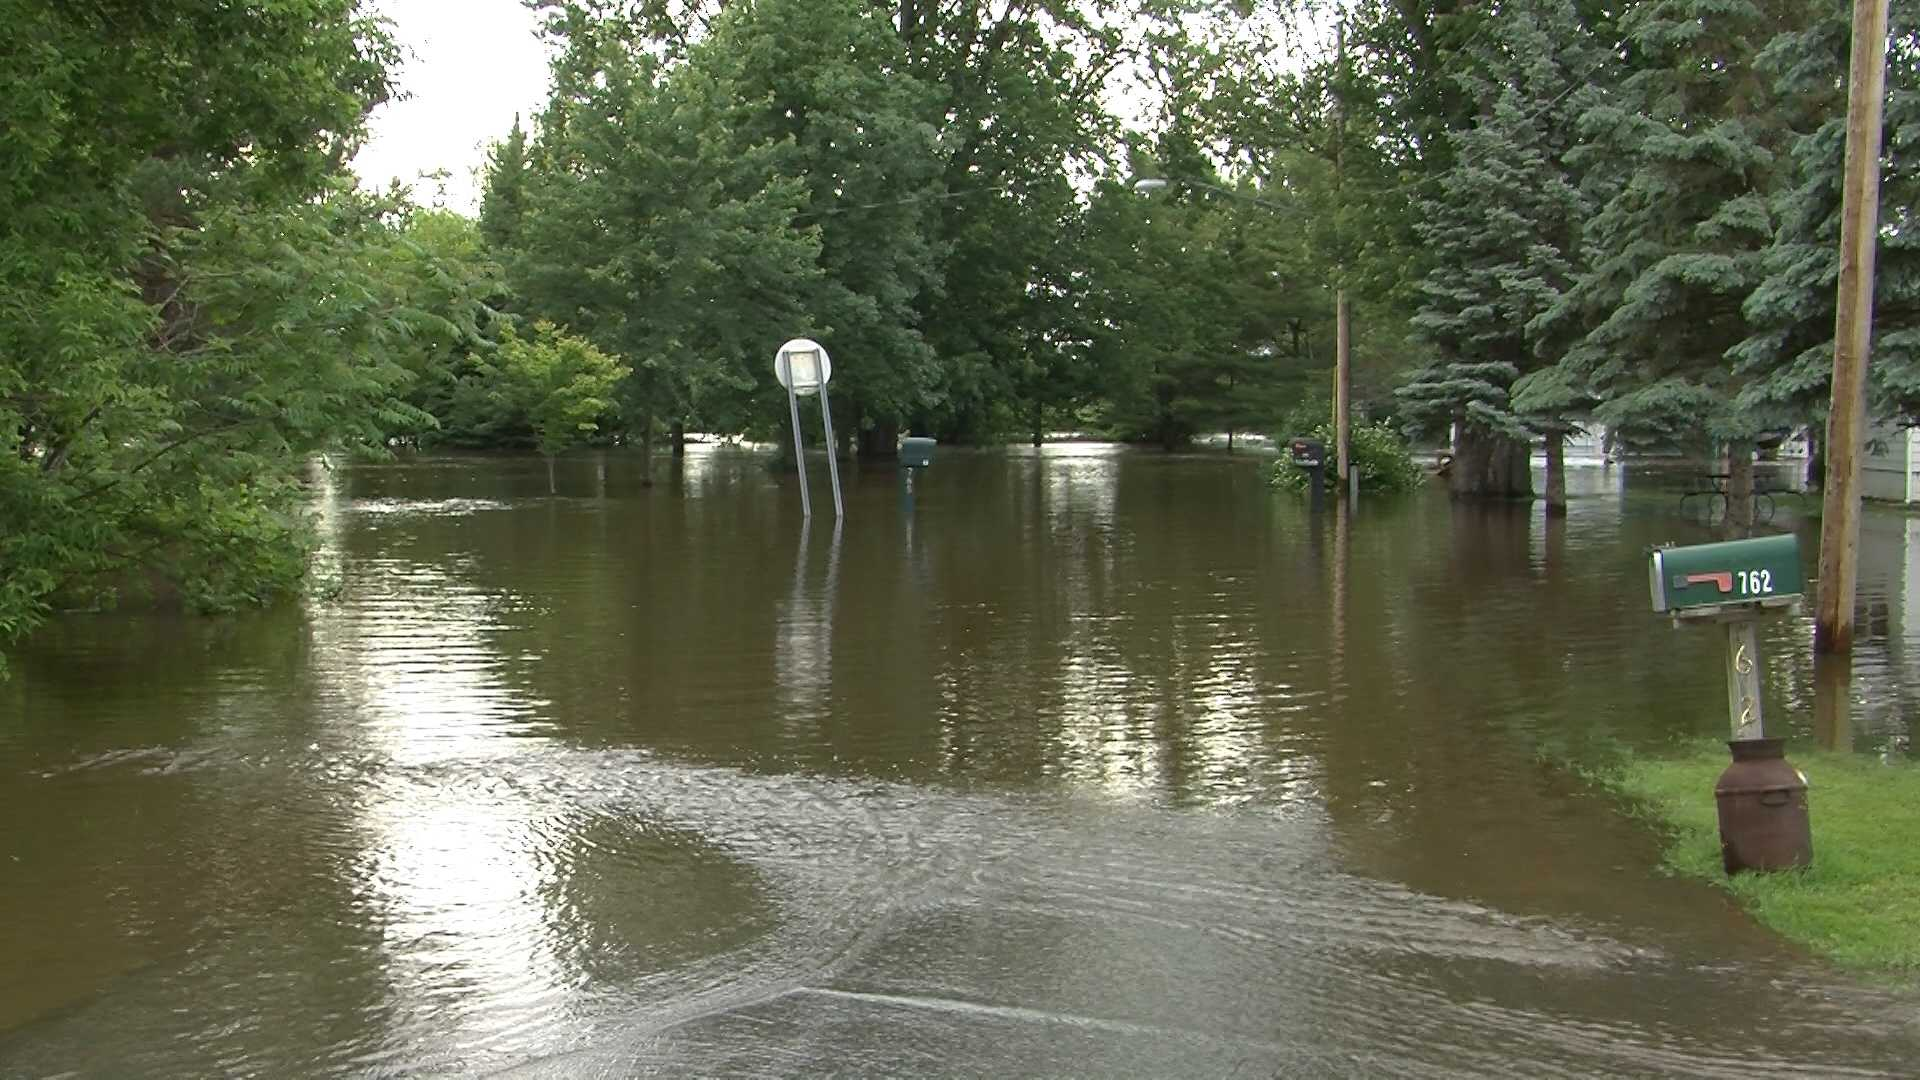 06-12-13 At least 3 rescued, neighborhoods flooded - img